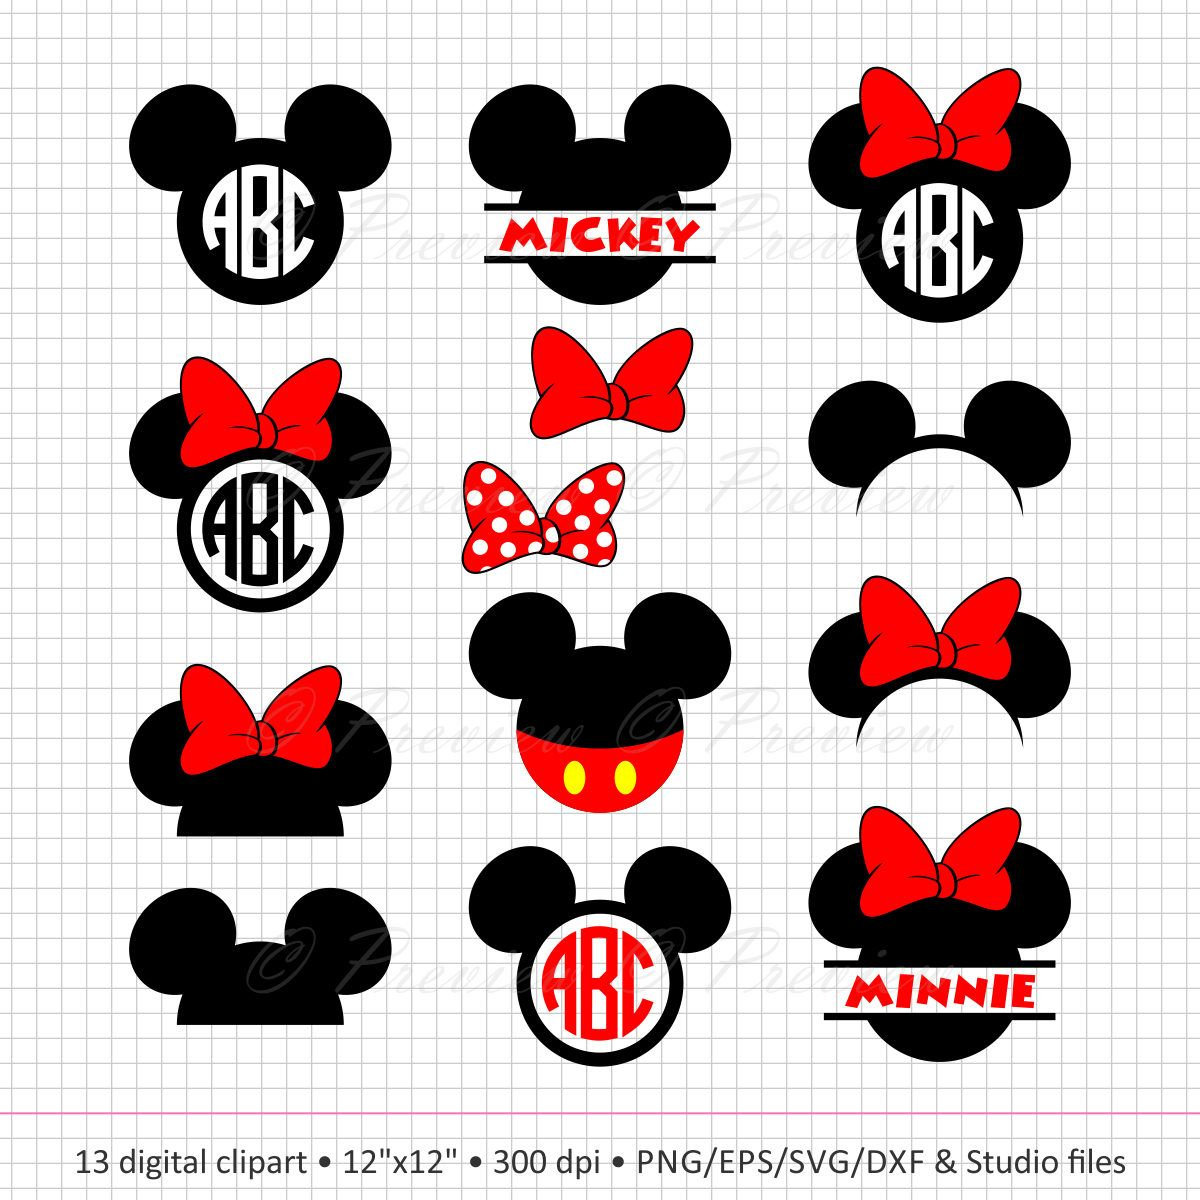 Buy 2 Get 1 Free! Digital Clipart Mickey Mouse Head